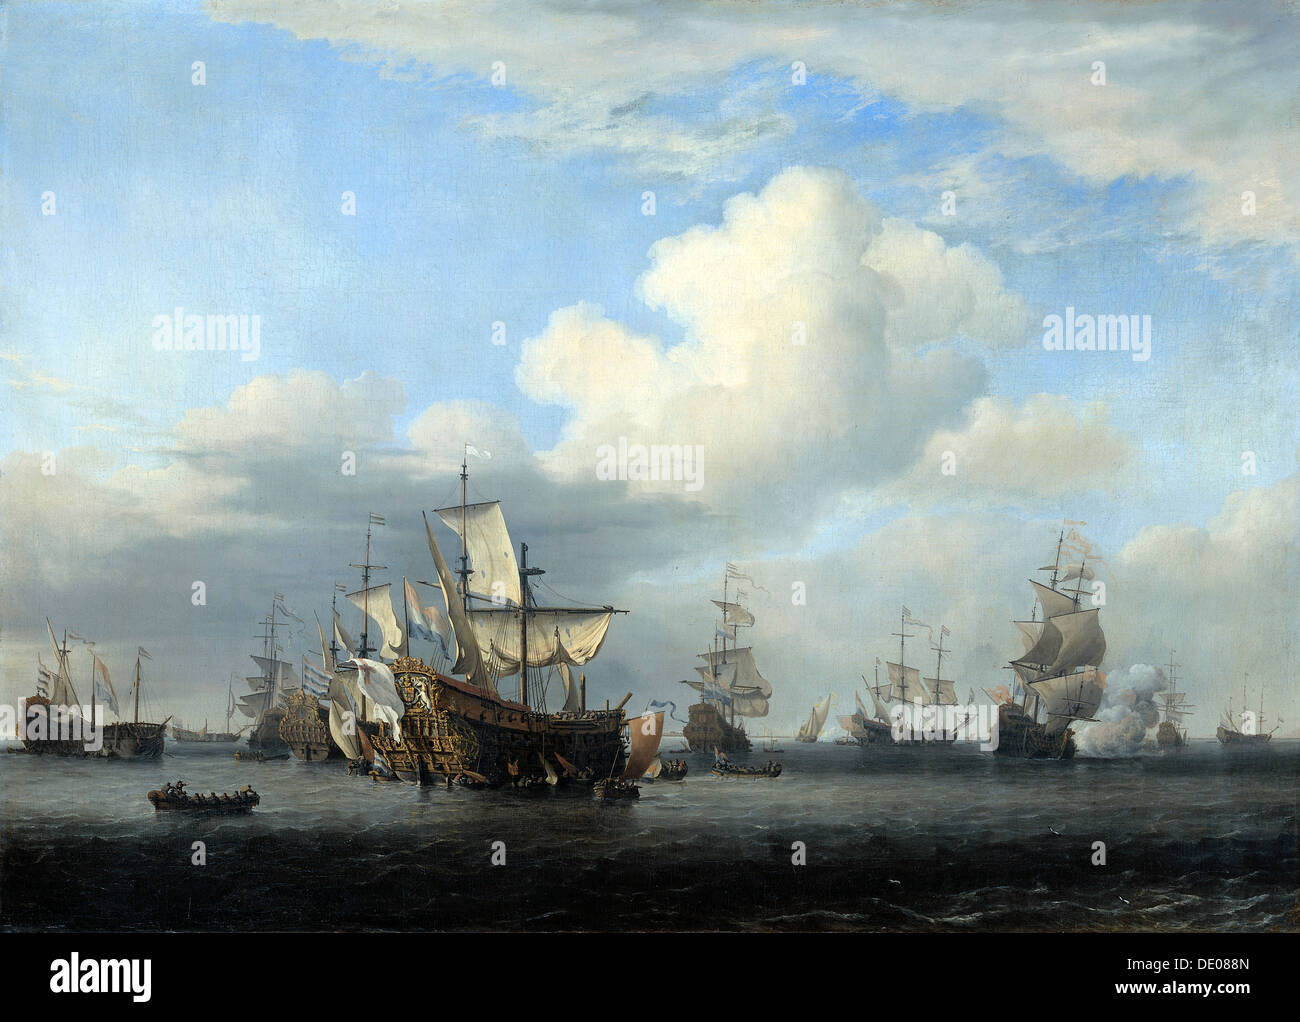 'The captured 'Swiftsure', 'Seven Oaks', 'Loyal George' and 'Convertine...', c1666. Artist: Willem van de Velde the Younger - Stock Image